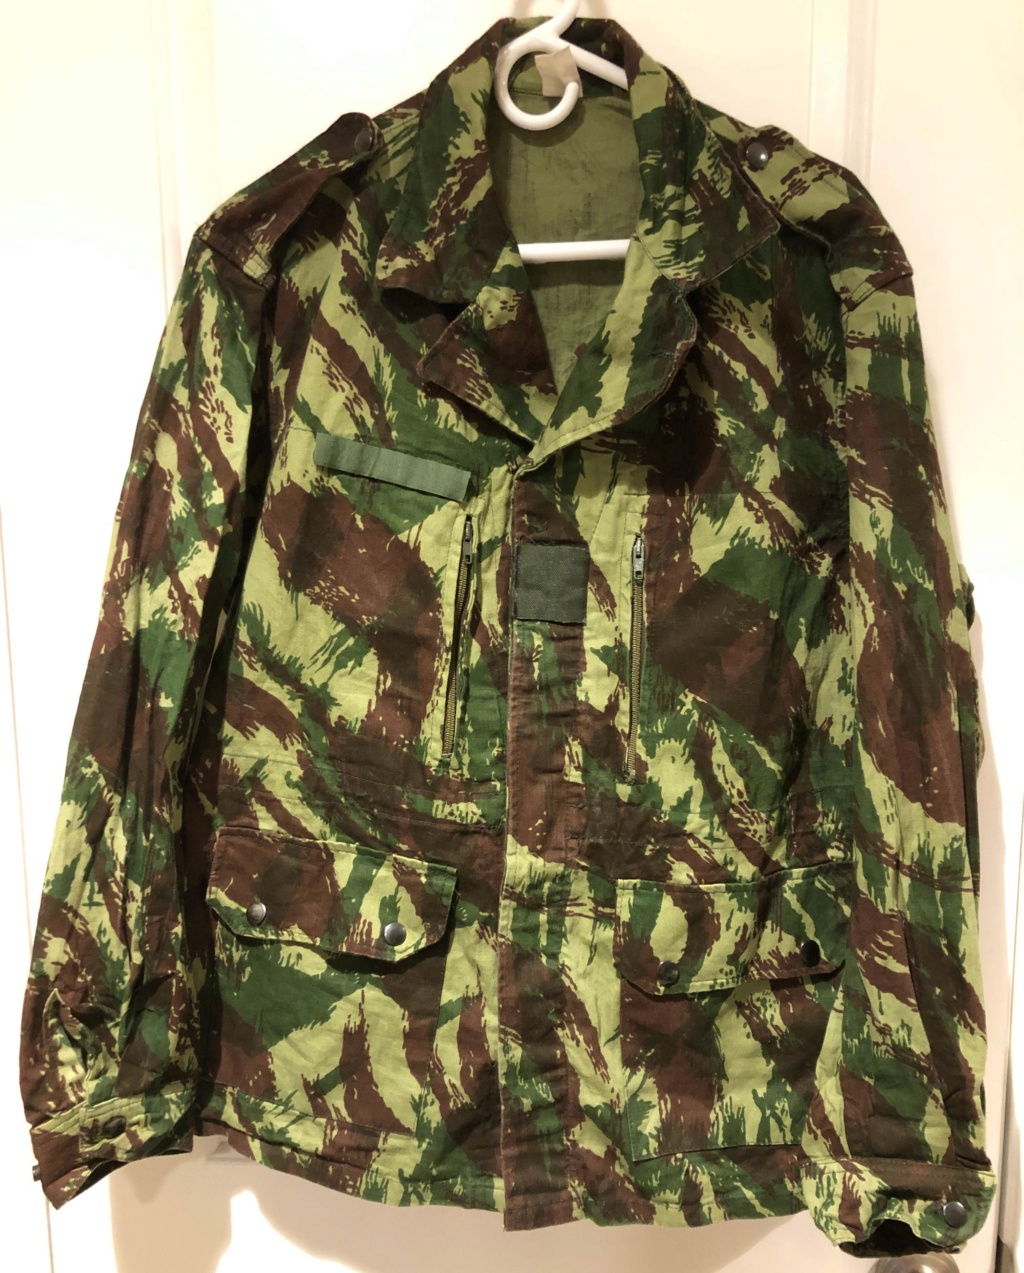 Portuguese Camo F1 Cut Export Uniform with French language tag 1_fron18